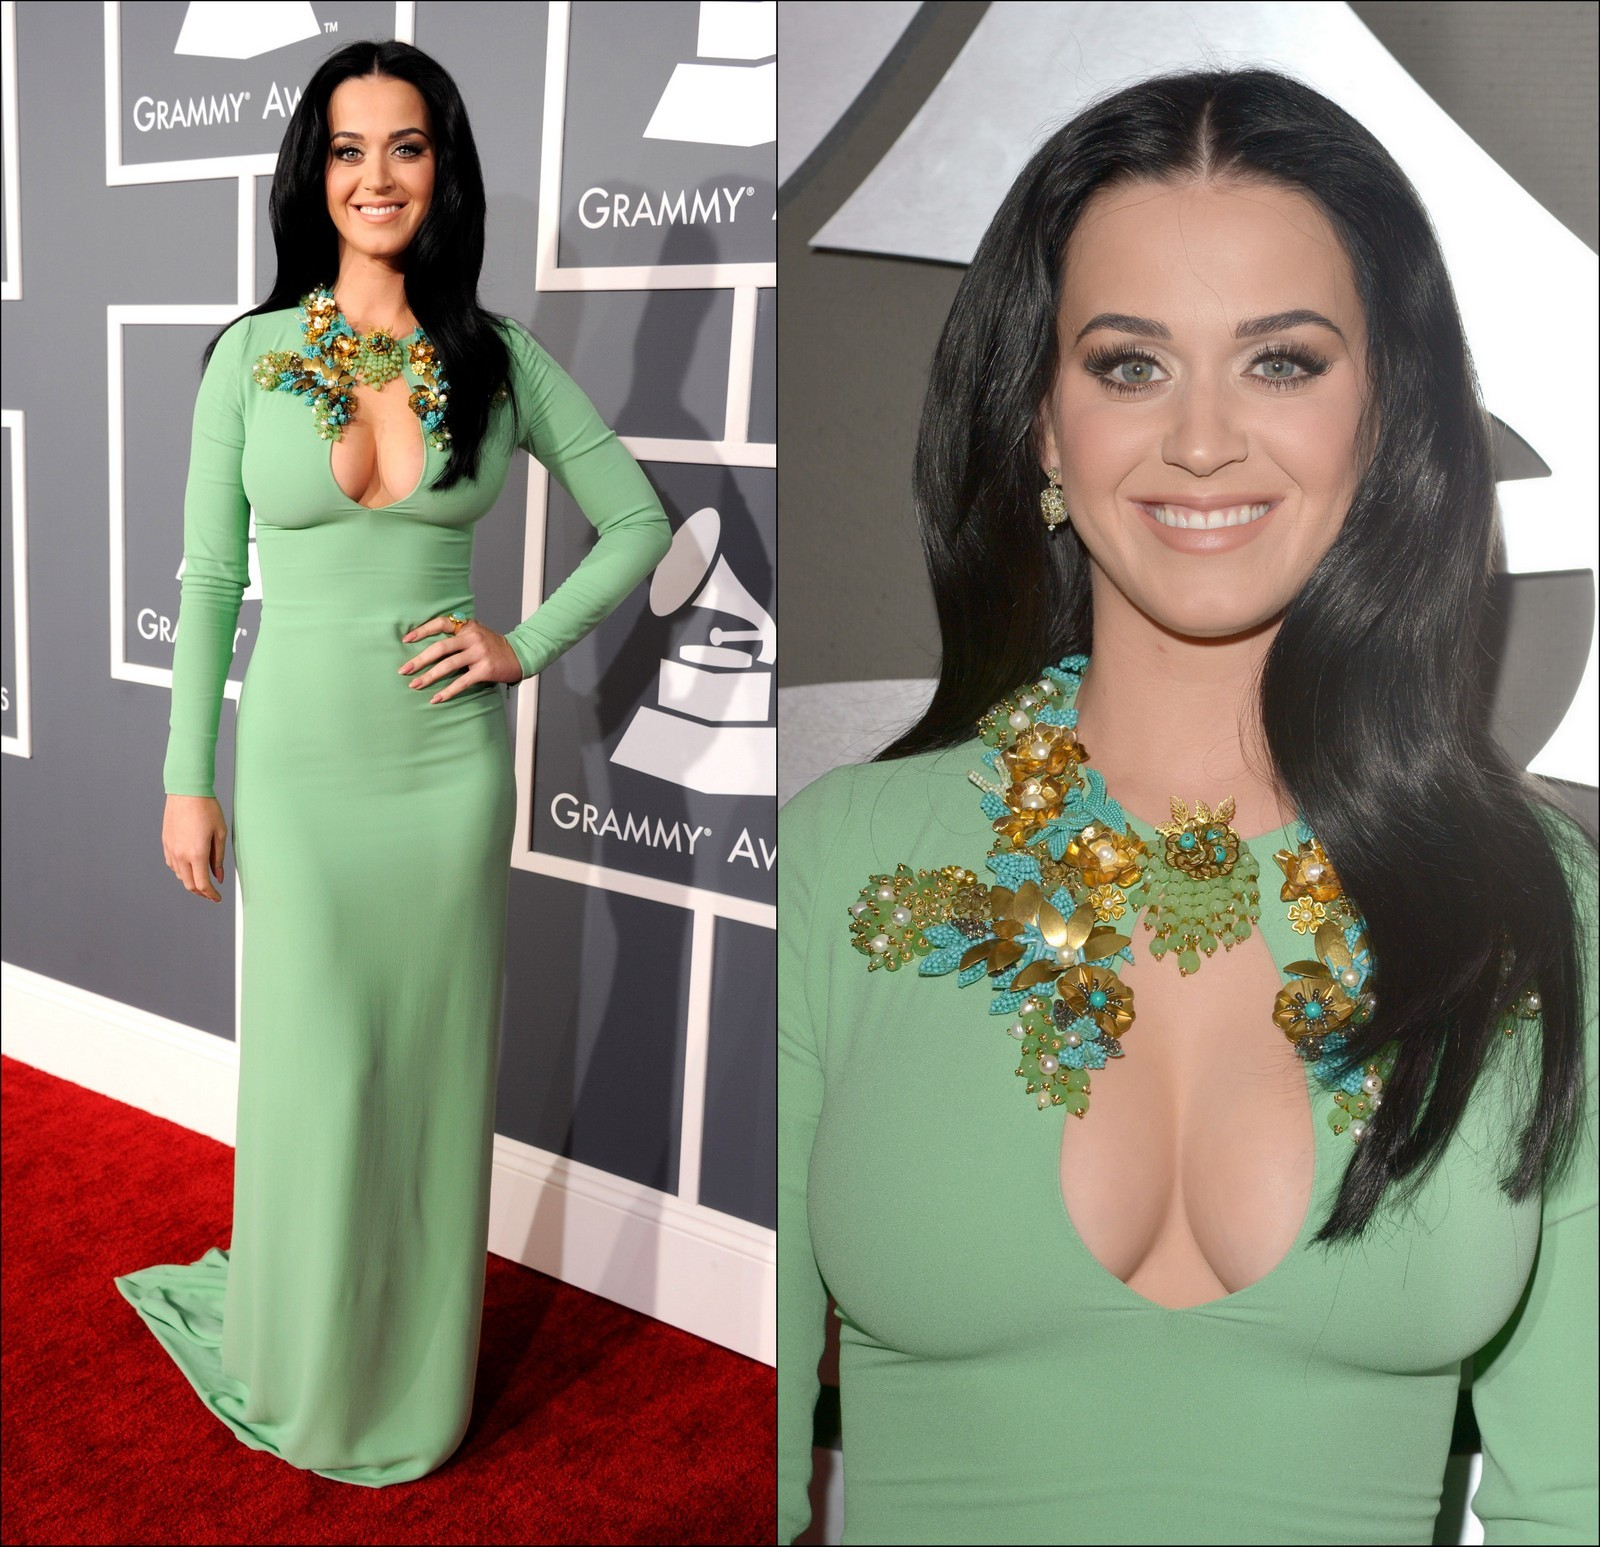 Katy Perry Grammy cleavage